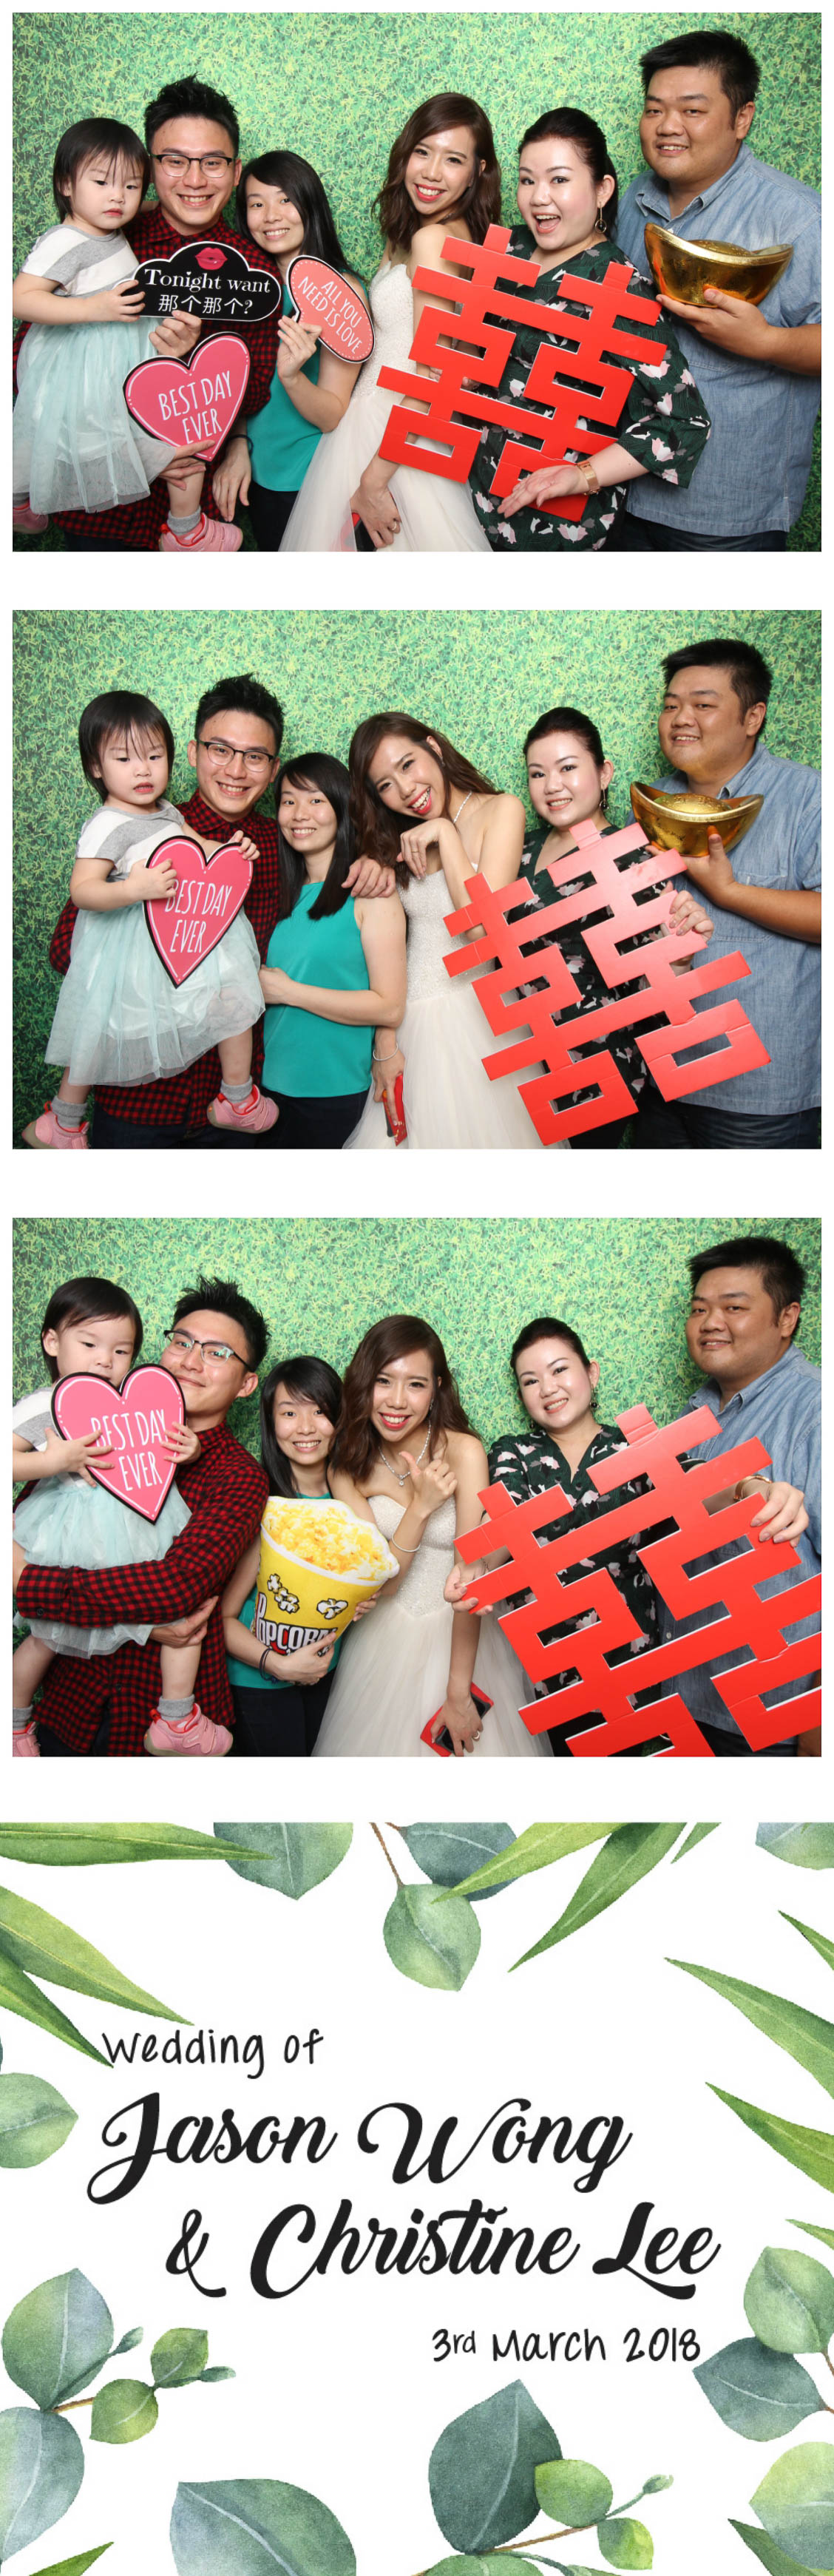 Photobooth 0302-10